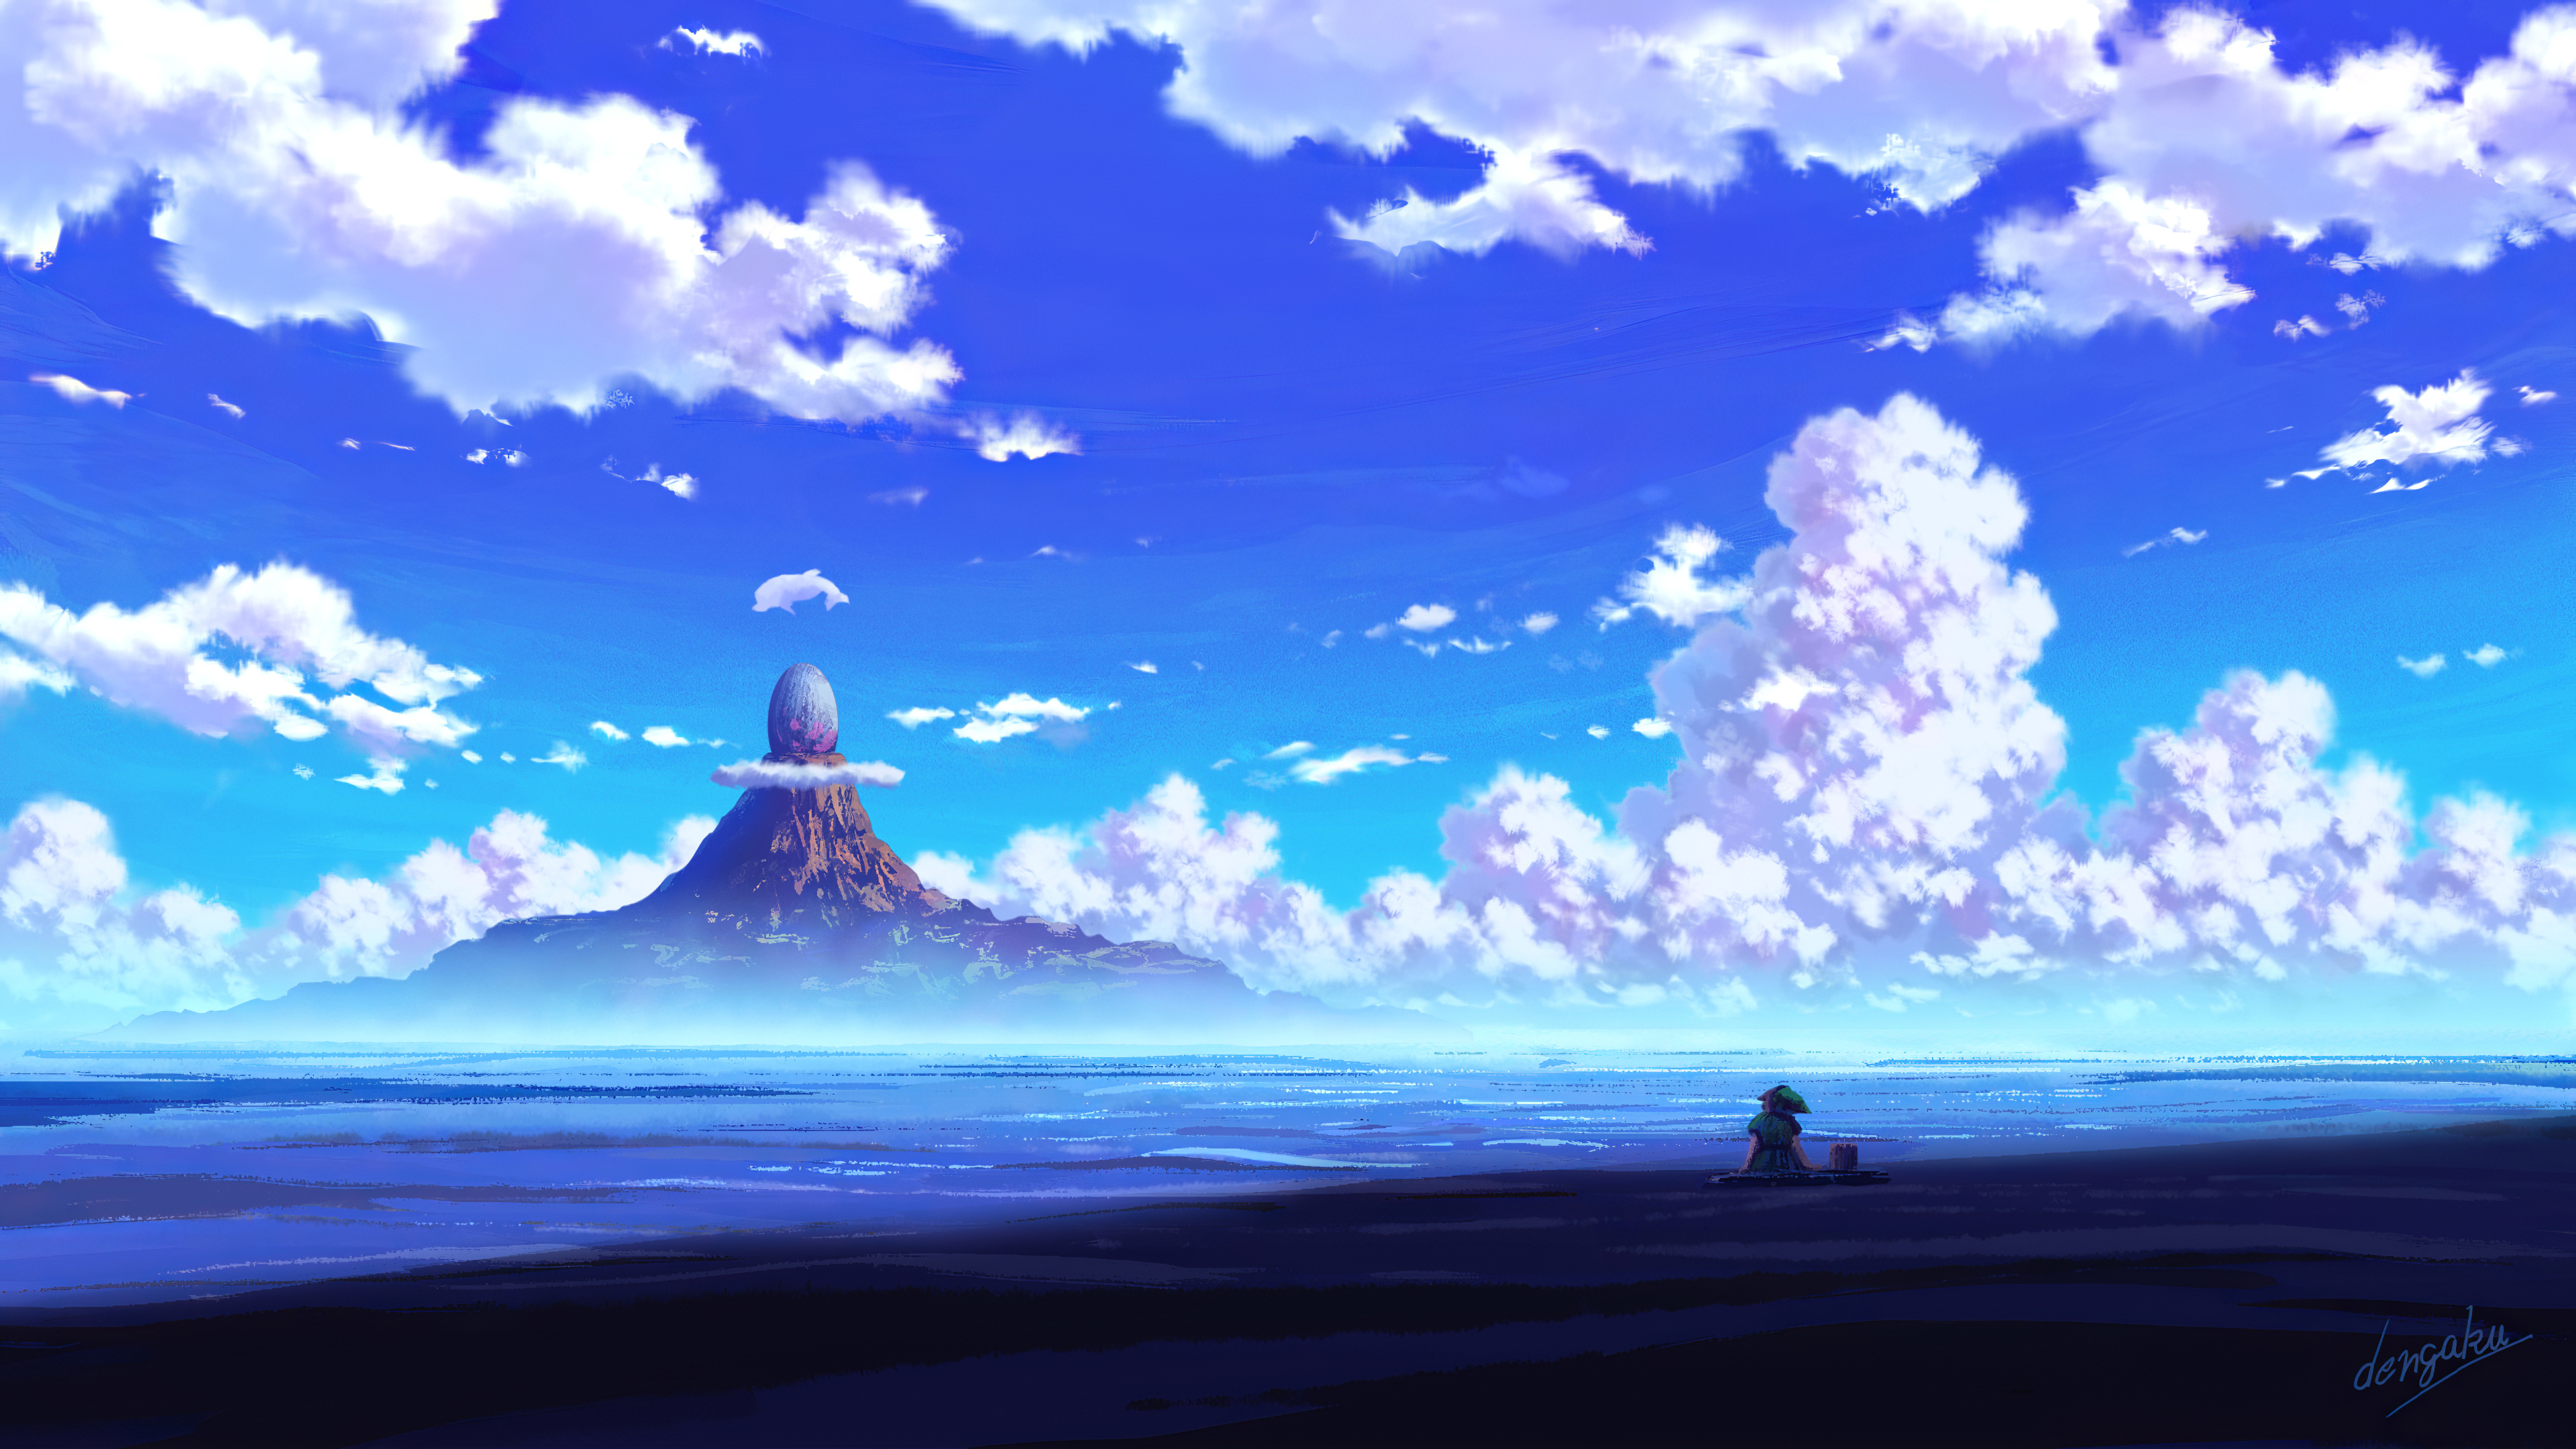 Anime Scenery Sitting 4k Hd Anime 4k Wallpapers Images Backgrounds Photos And Pictures